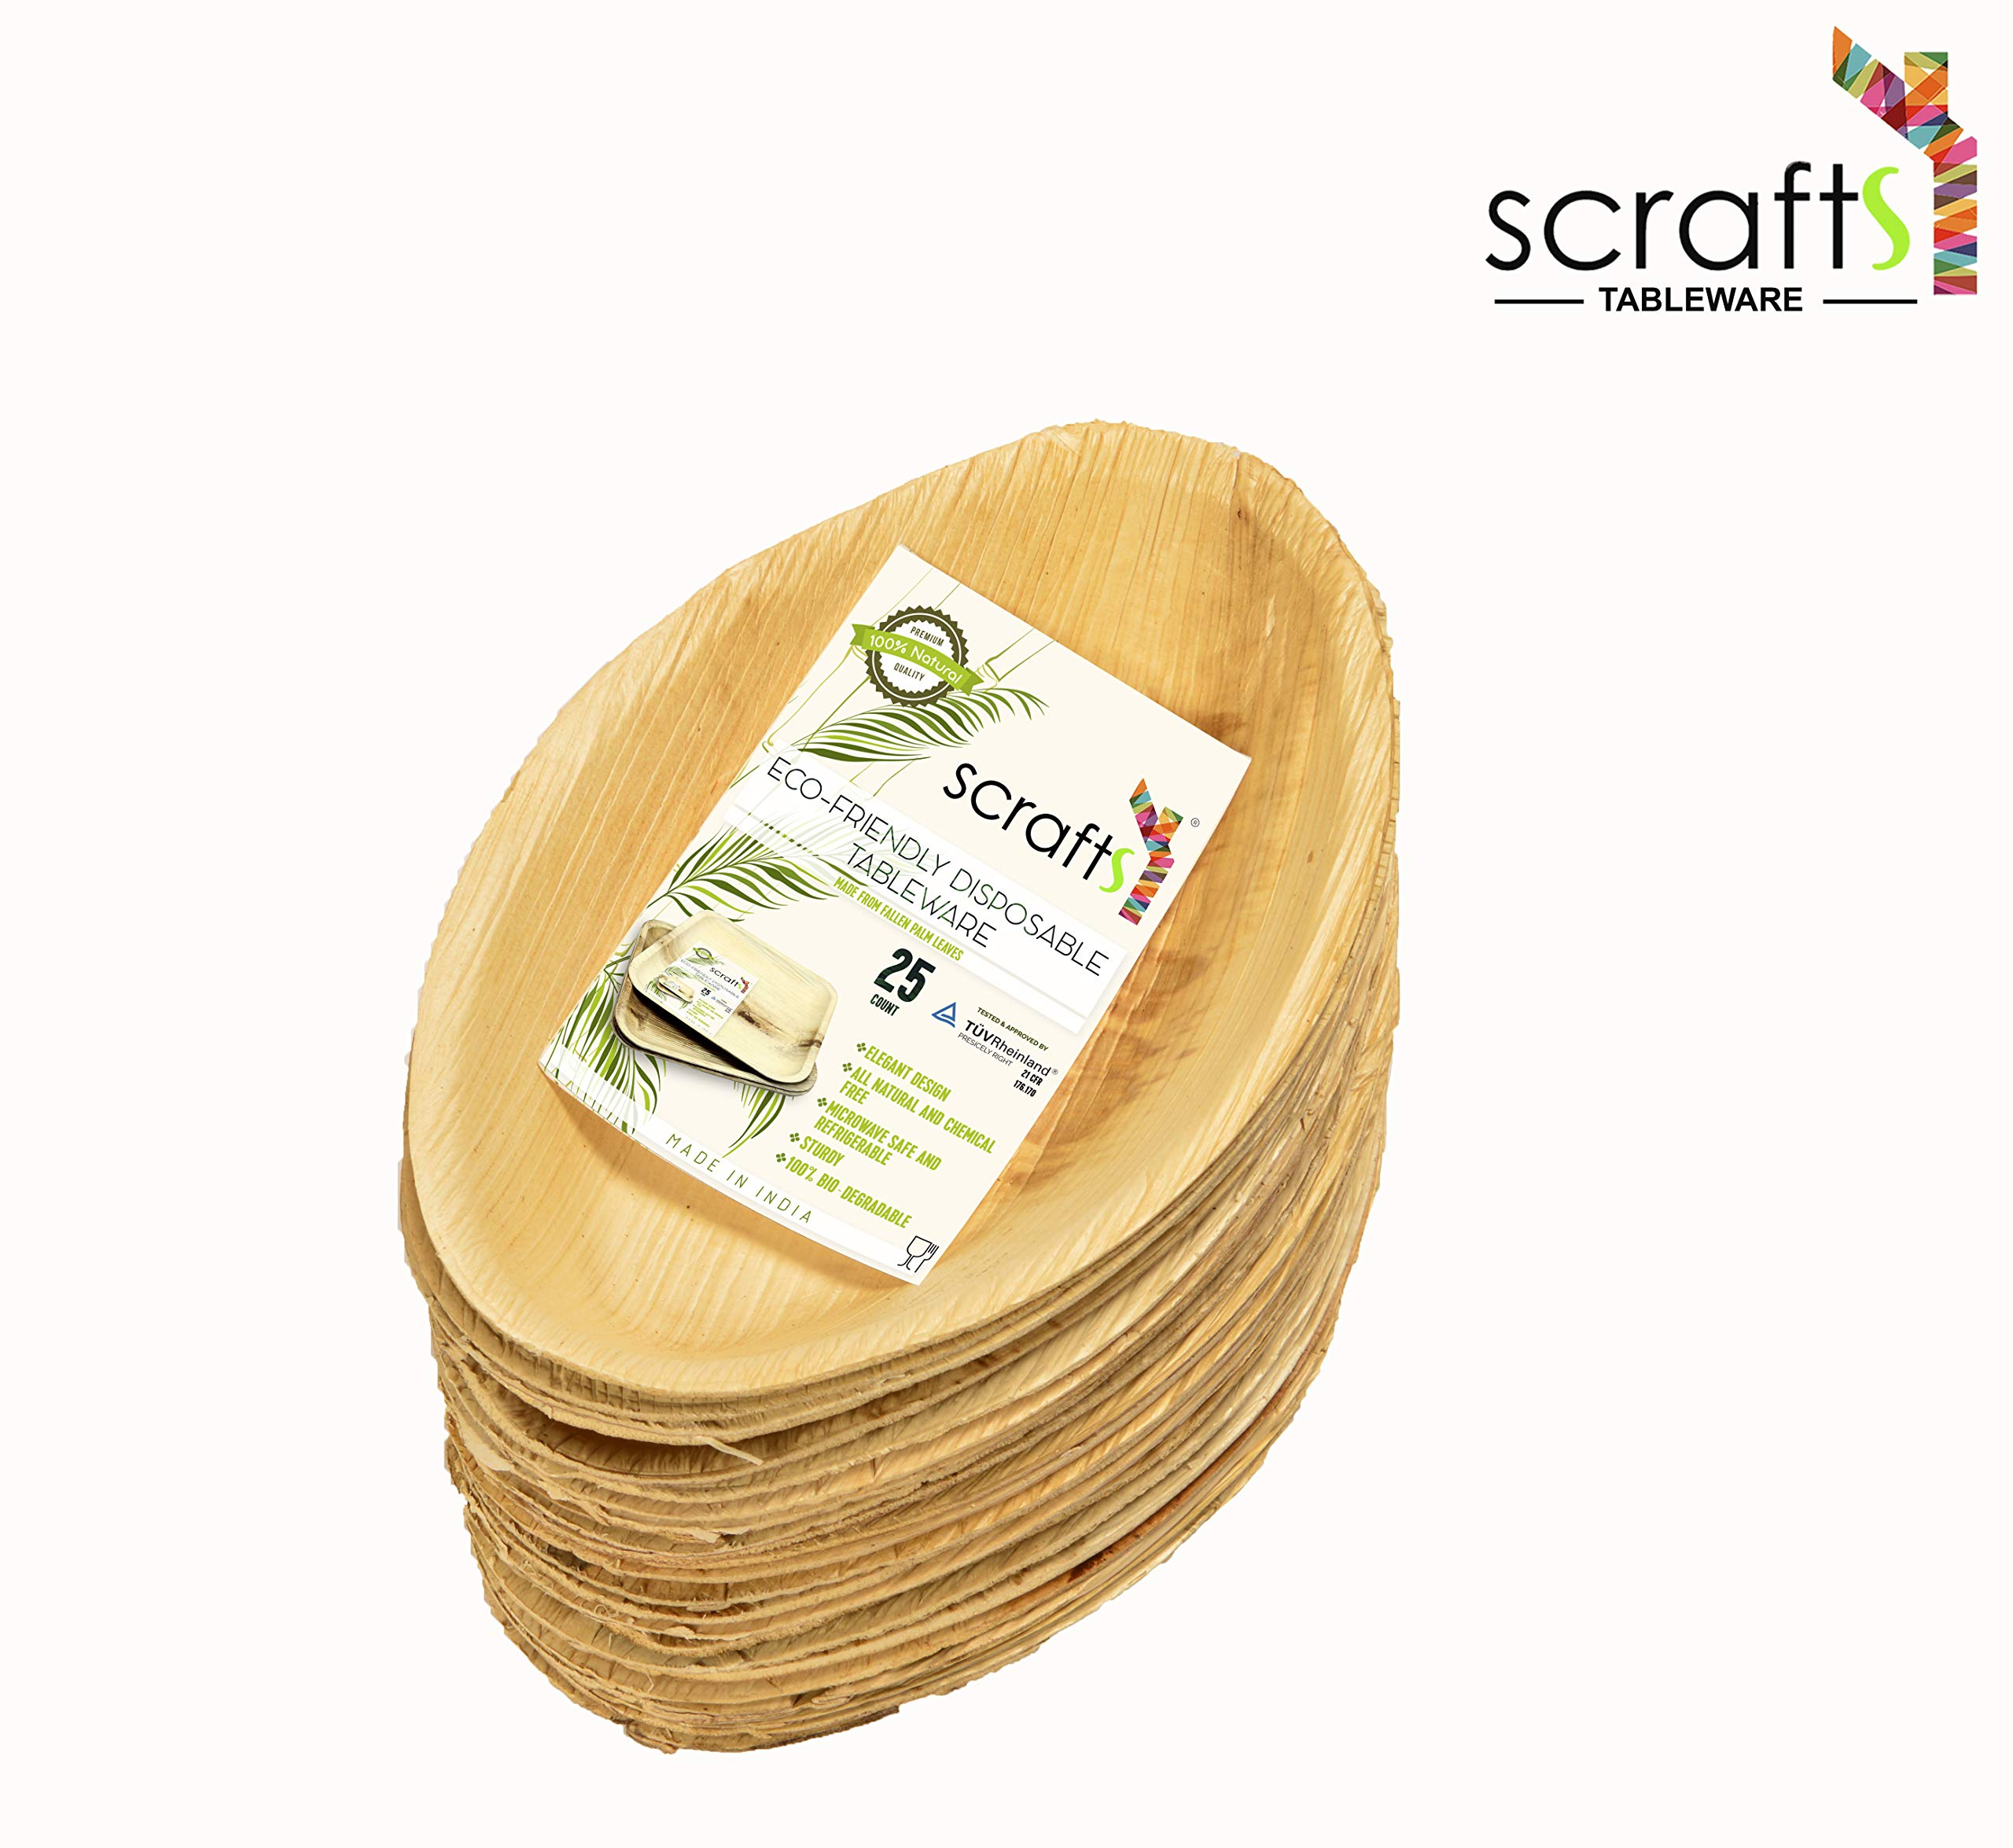 7'' x 3'' Round Disposable Palm Leaf Boat Bowls by Scrafts - Compostable,Biodegradable Heavy Duty Dinner Party Plate/Bowl - Comparable to Bamboo Wood - Elegant Plant Based Dishware: (50 Pack) by Scrafts (Image #2)